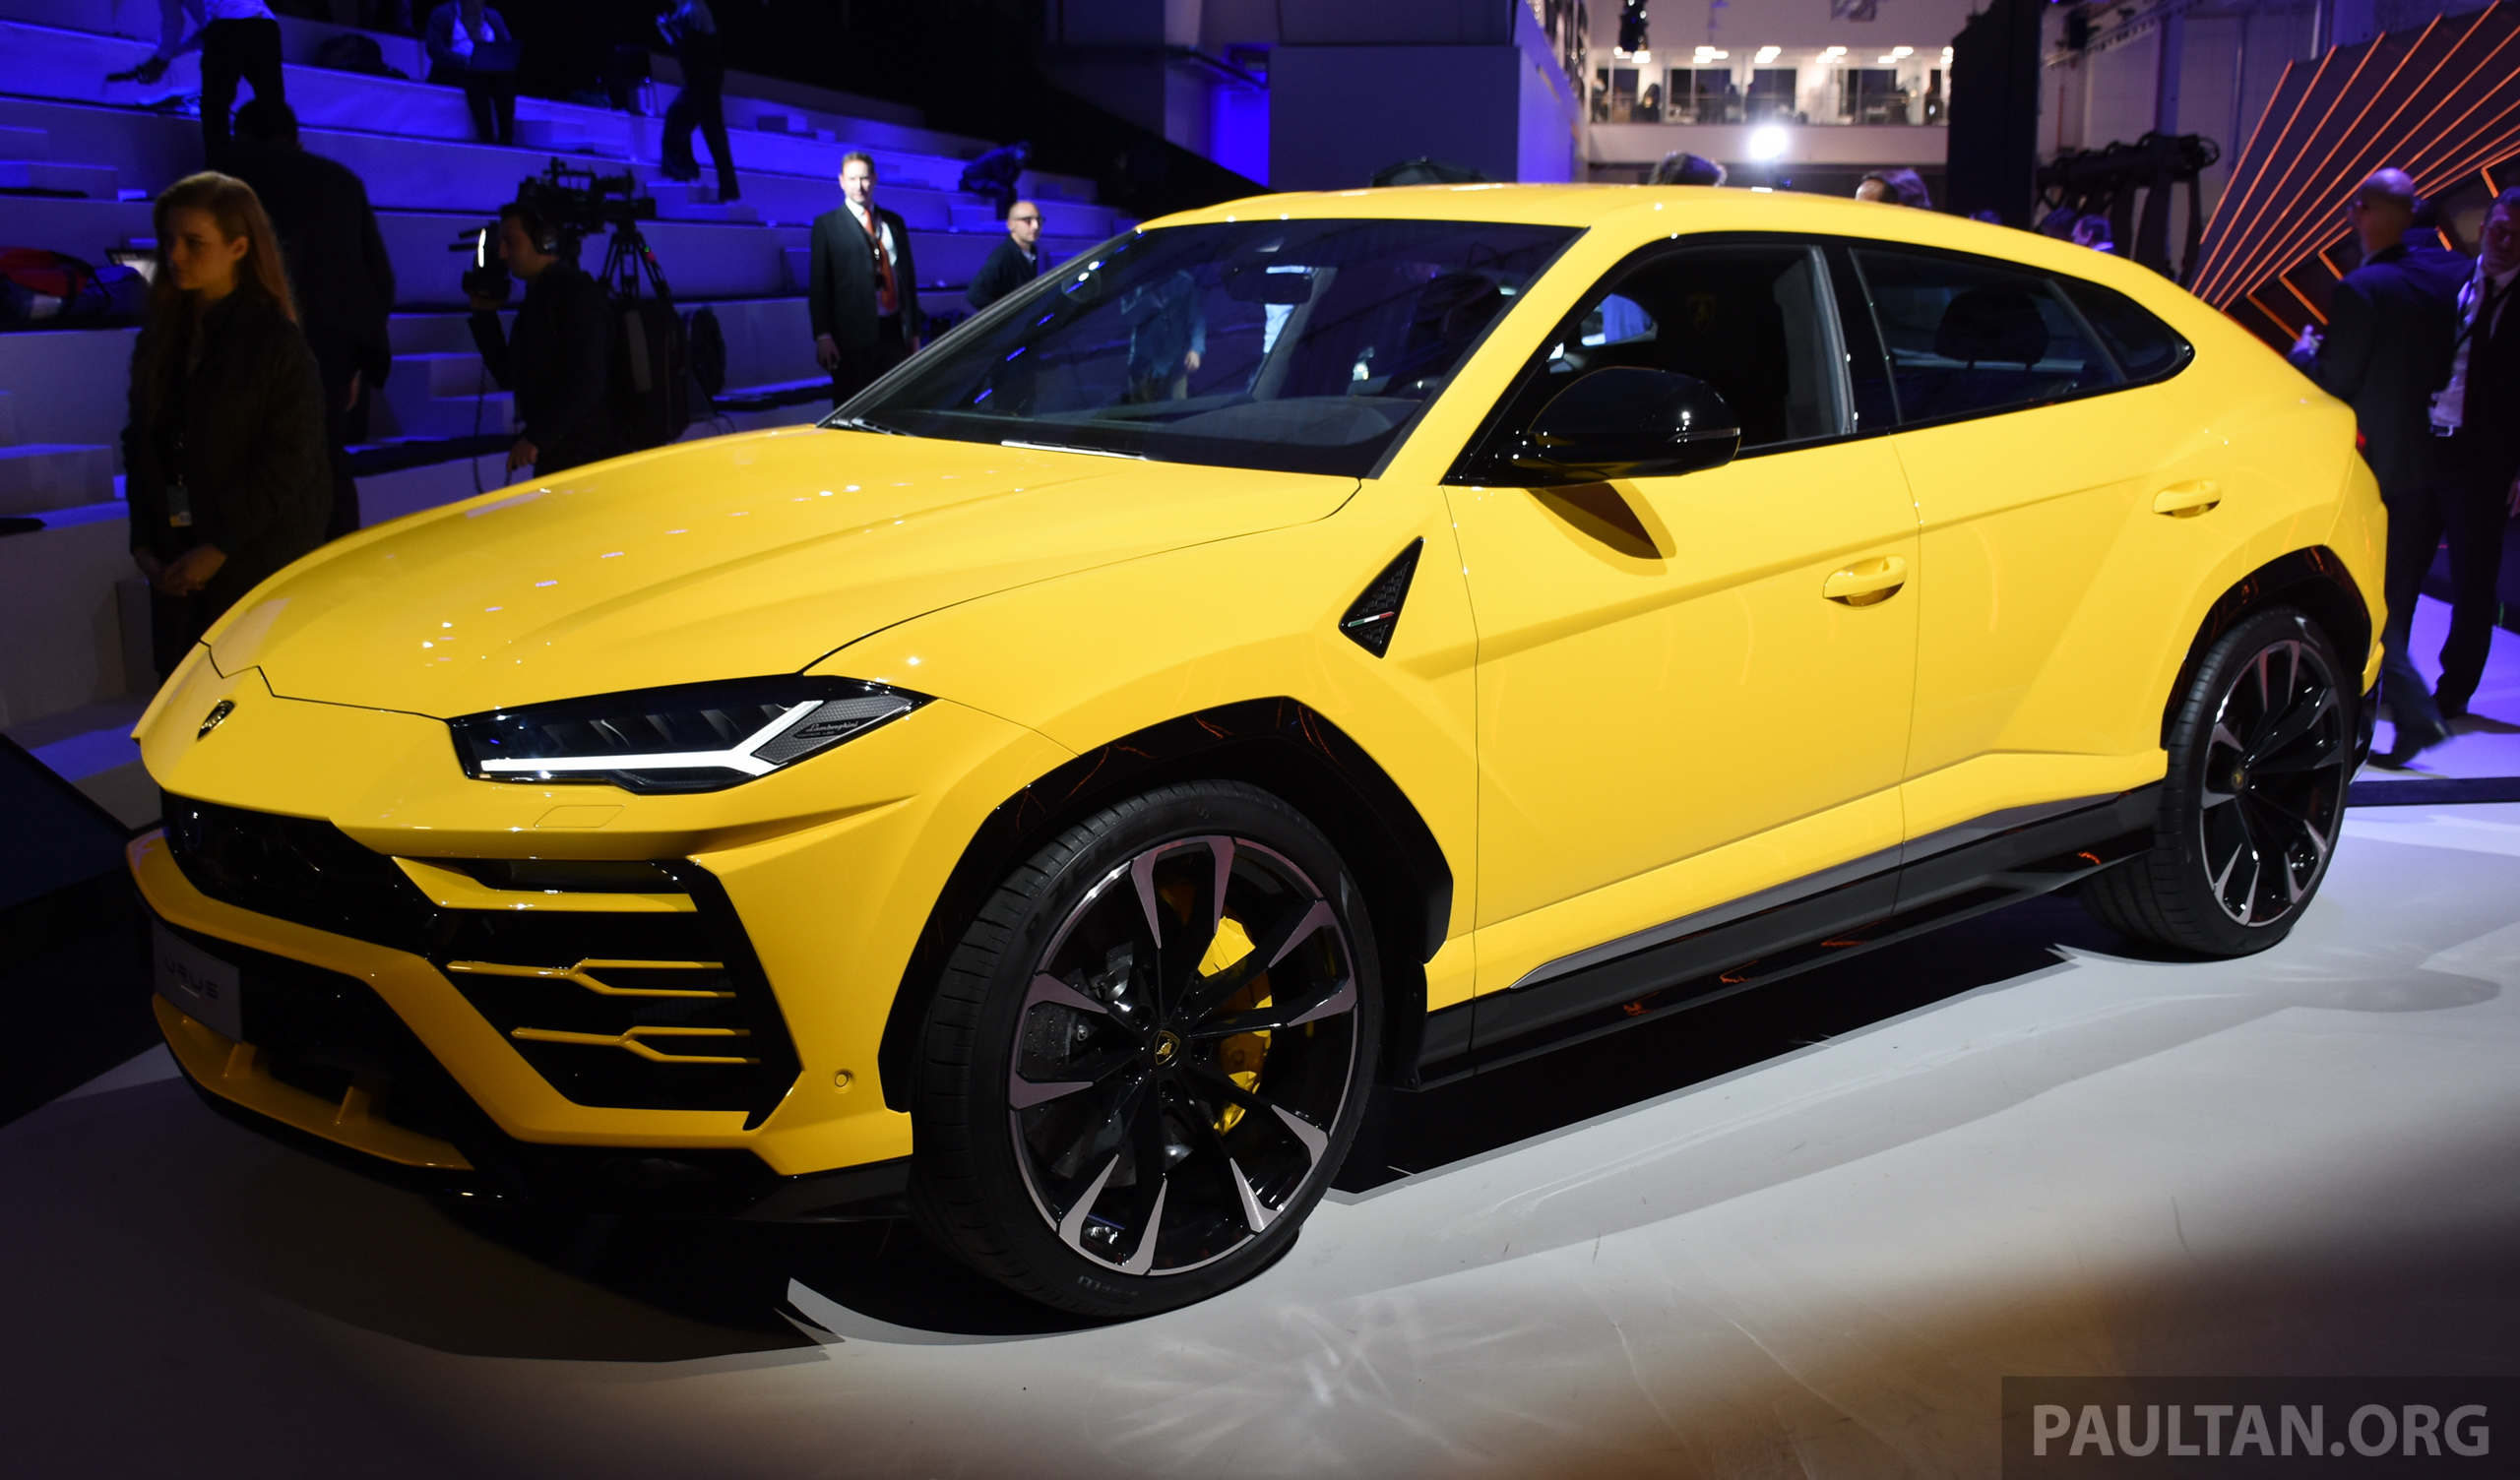 Suv Lamborghini >> Lamborghini Urus – Sant'Agata's 650 PS, 850 Nm SUV makes its official debut, deliveries begin in ...